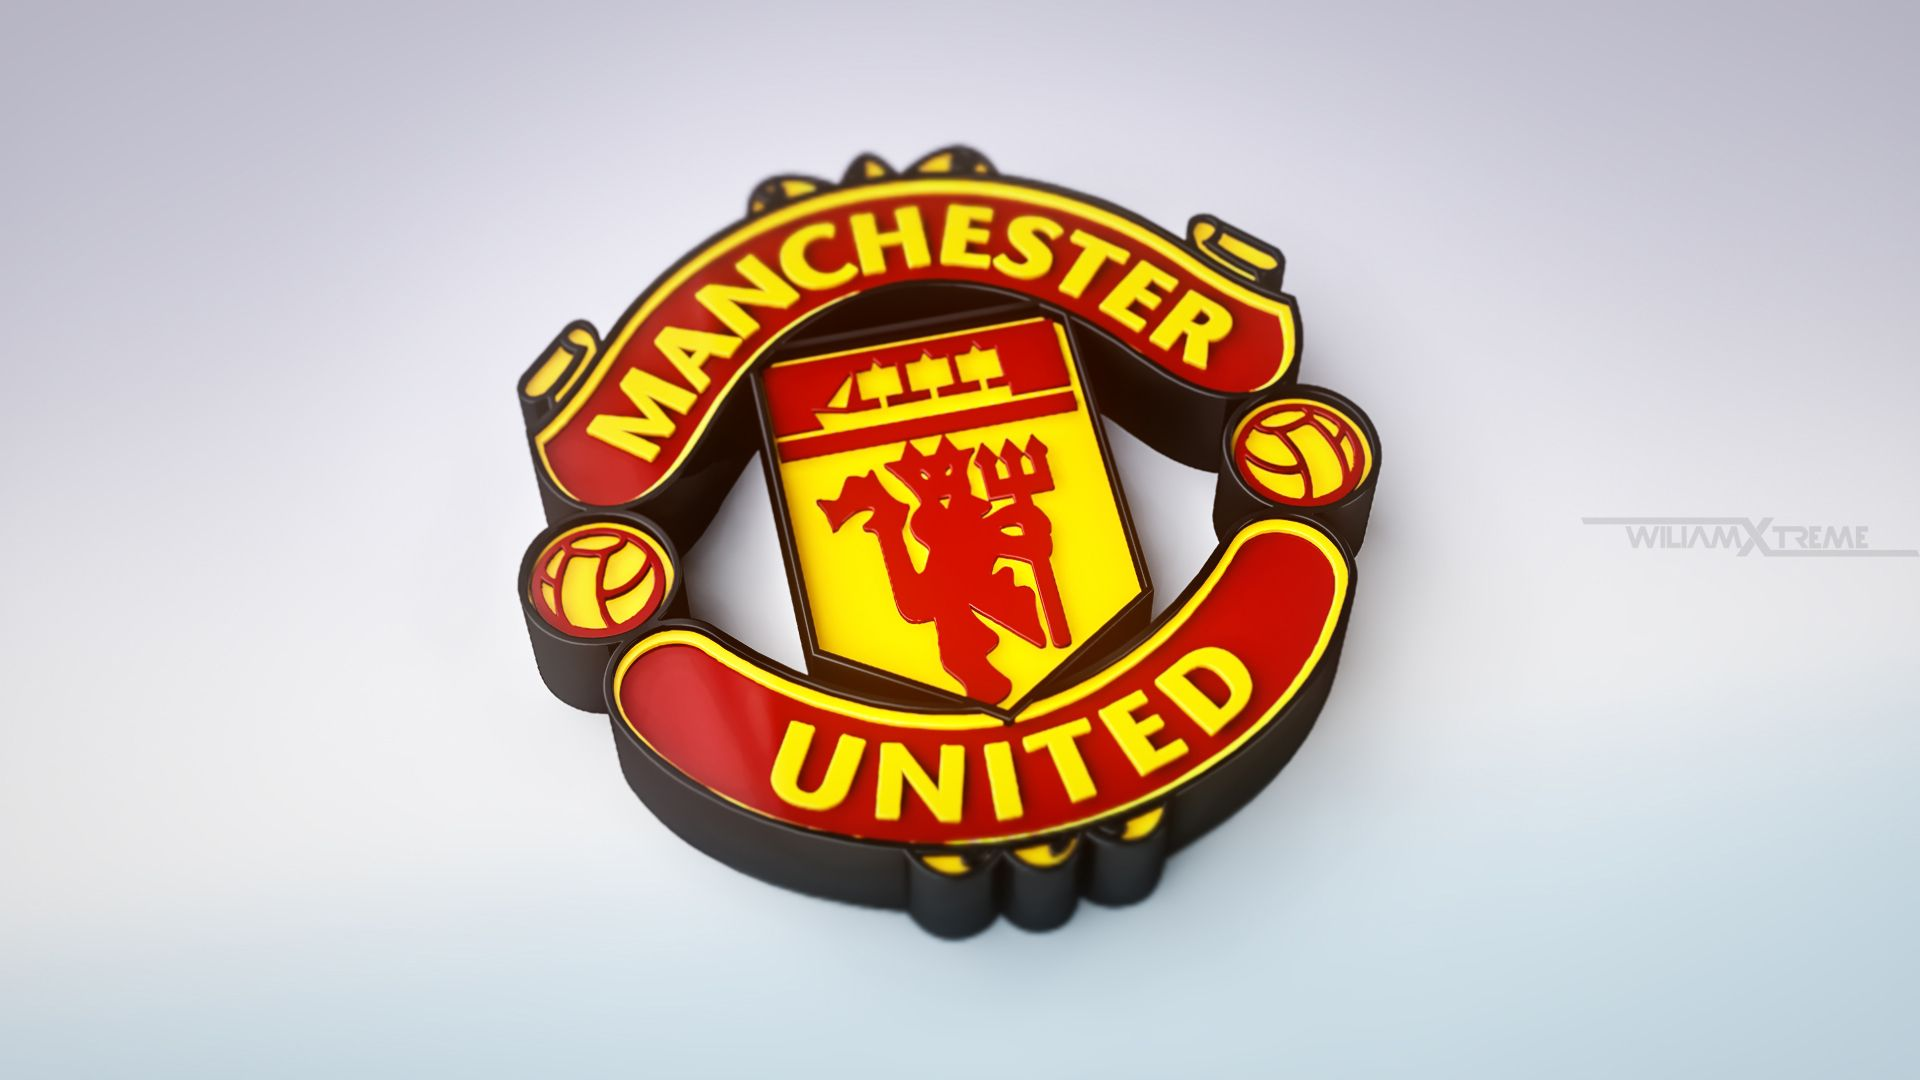 Manchester united 3d logo hd sports 4k wallpapers images manchester united 3d logo voltagebd Gallery